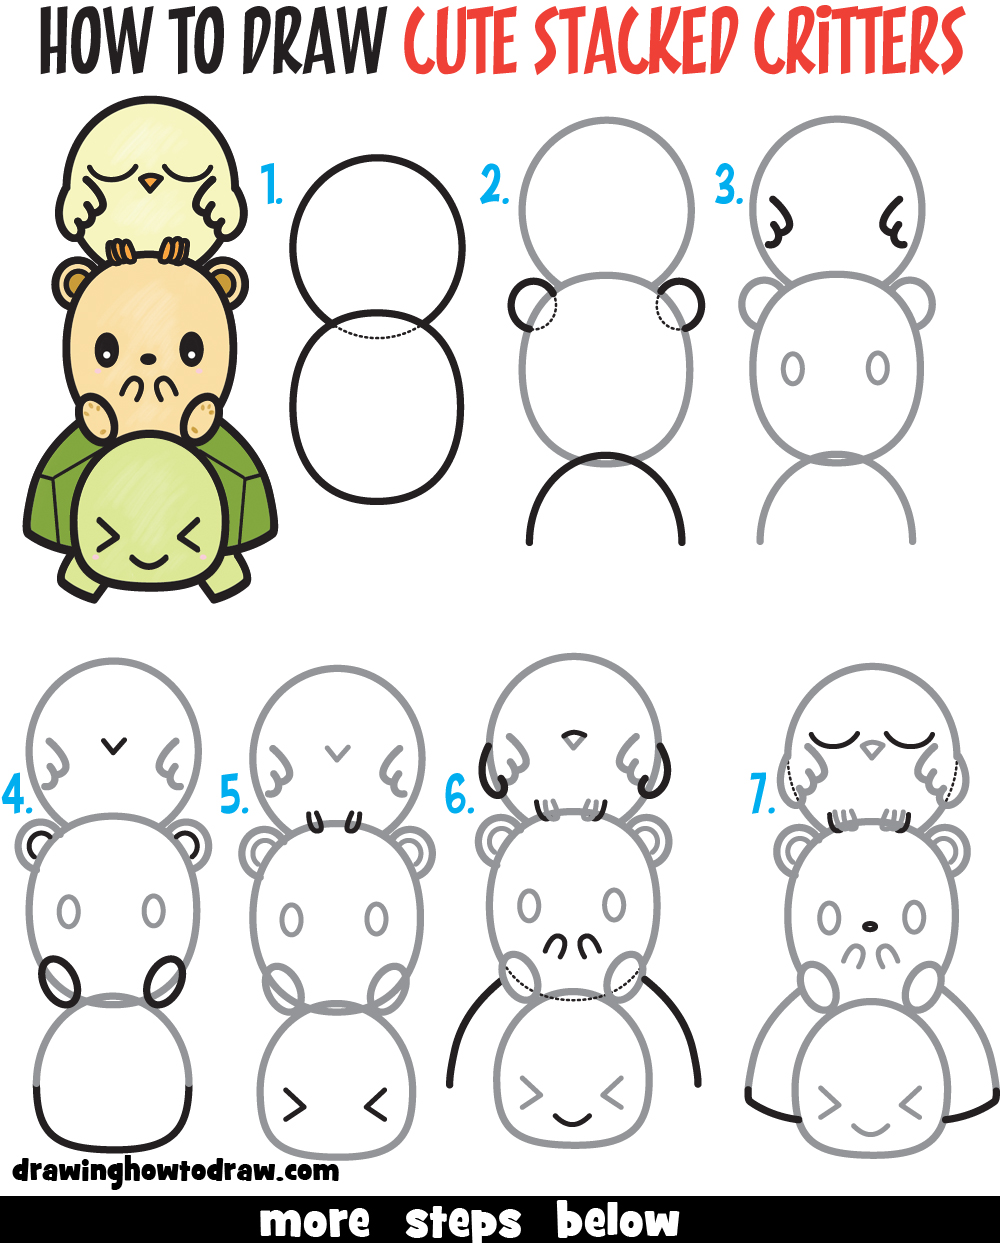 Learn How to Draw Cute Cartoon Turtle, Hamster, & Bird (Kawaii) Easy Step by Step Drawing Tutorial for Kids